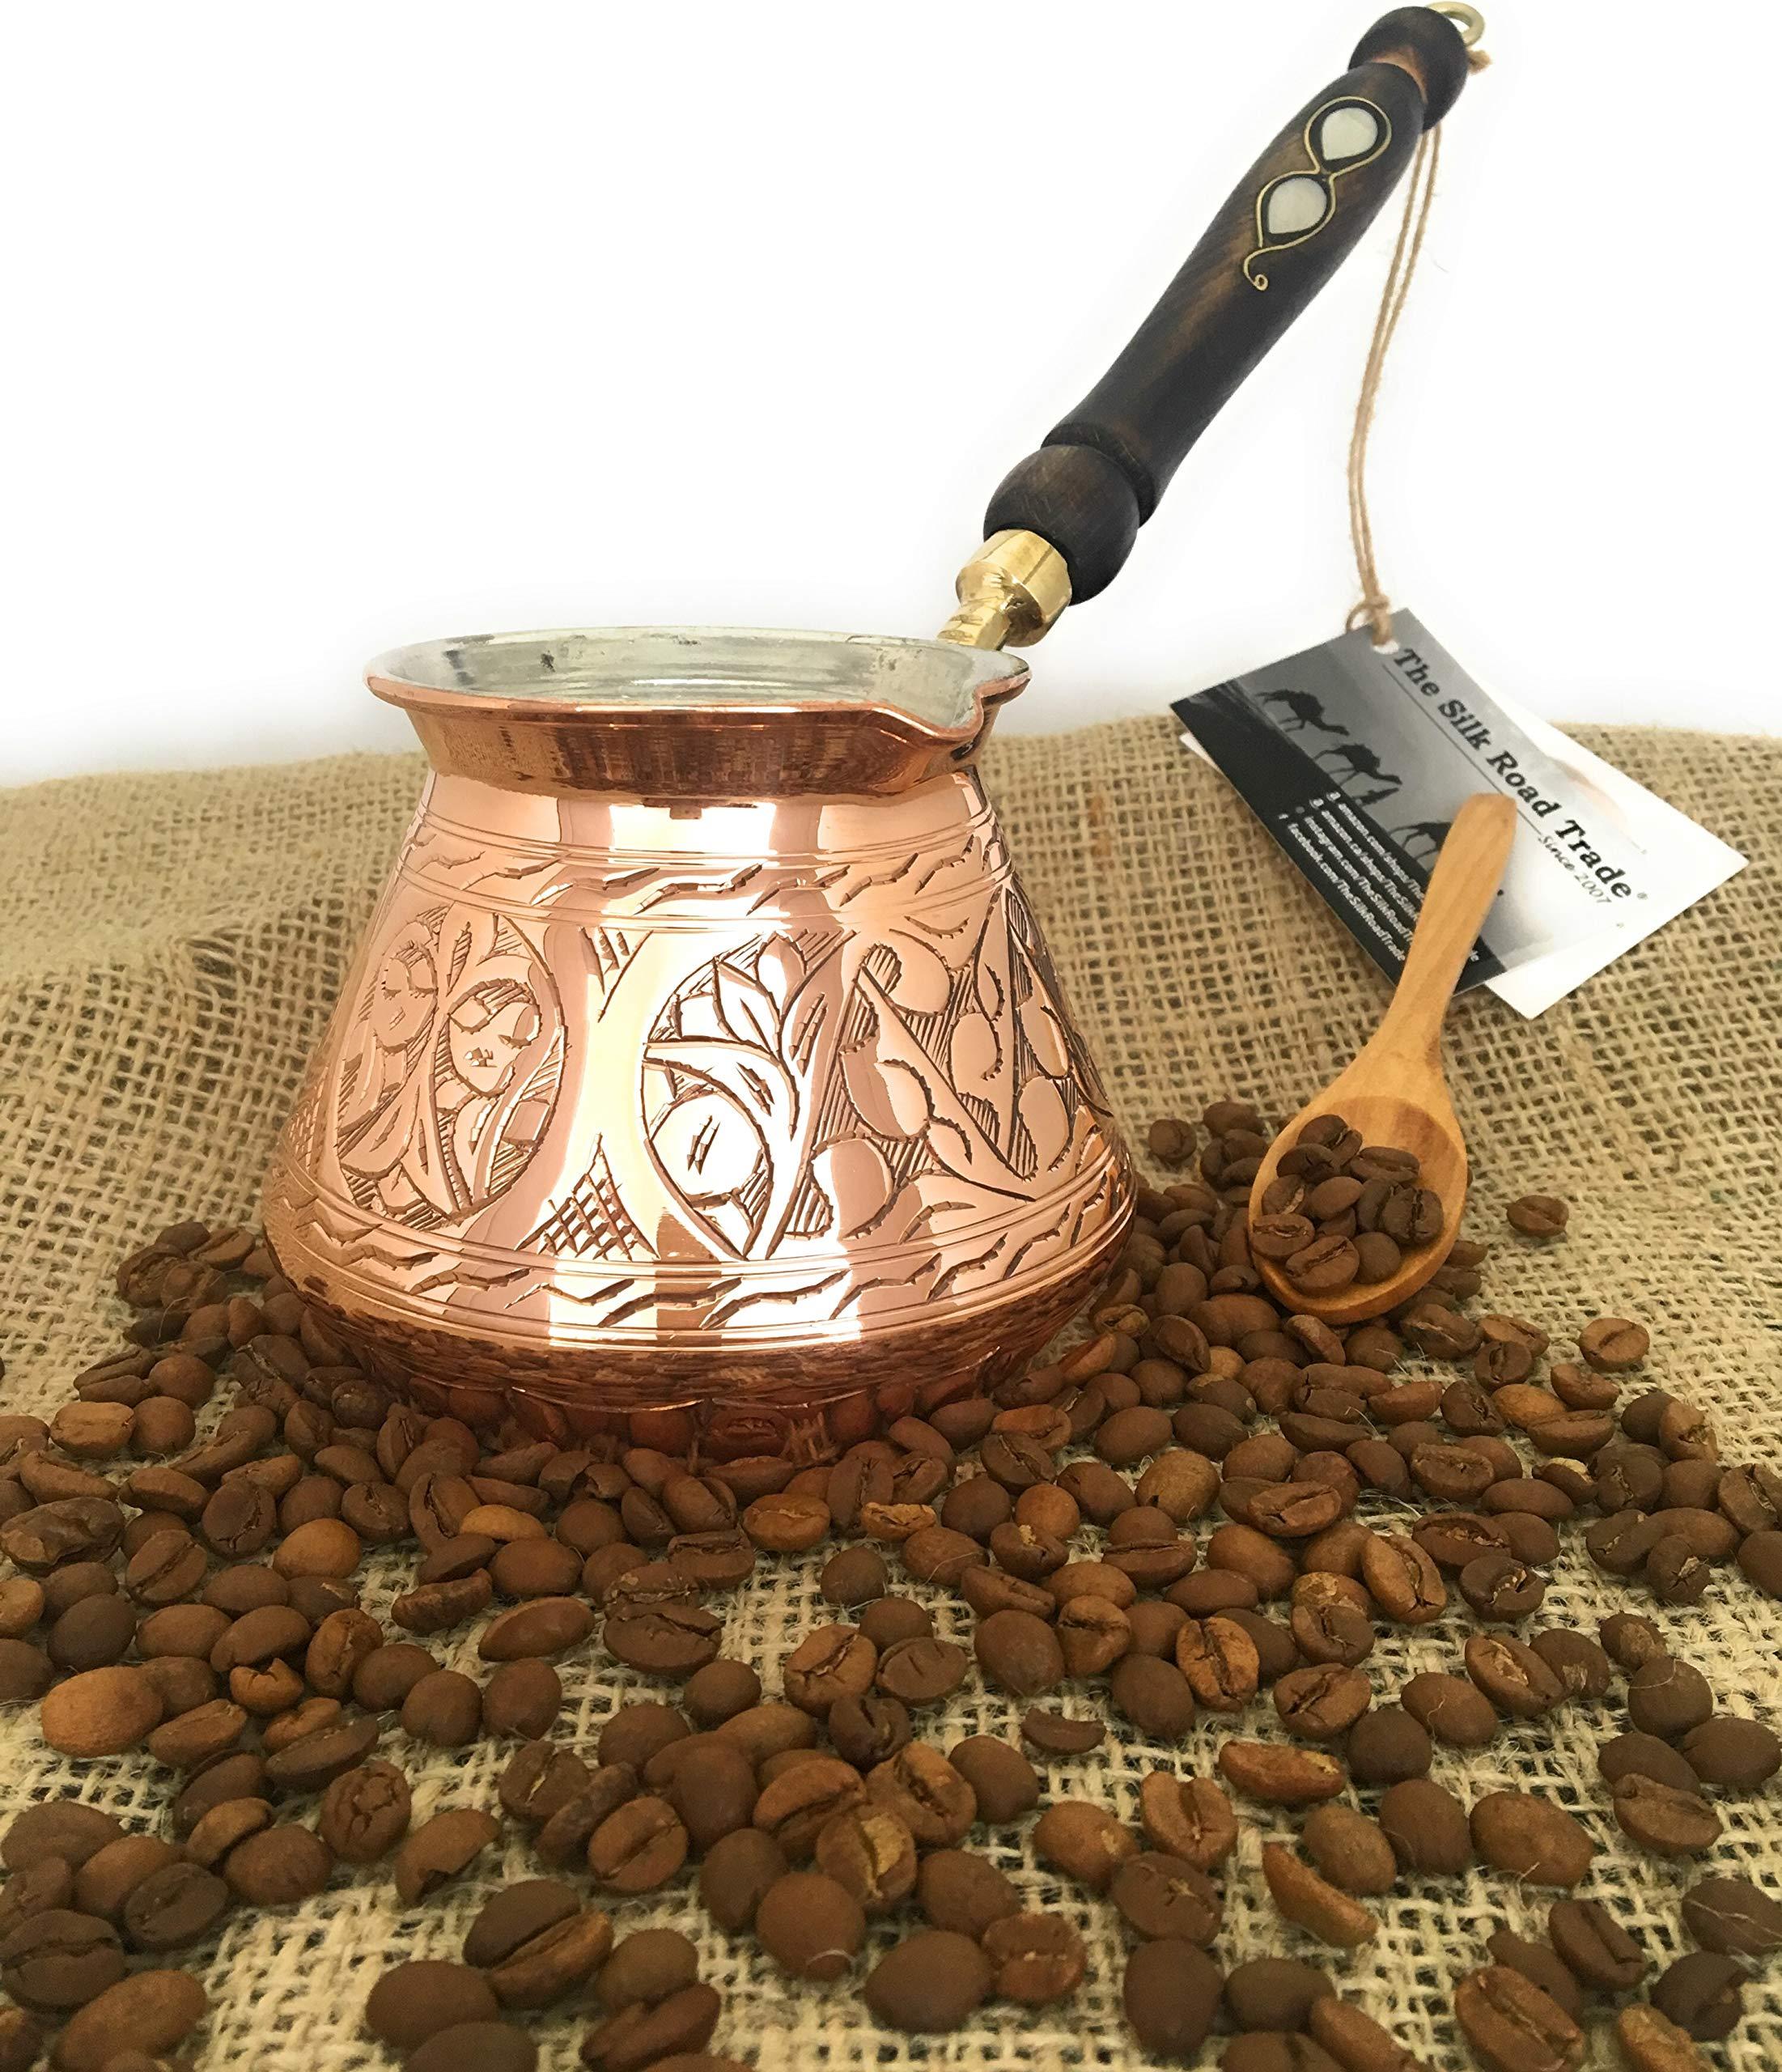 The Silk Road Trade - ACI Series (Large) - Thickest Solid Hammered and Engraved Copper Turkish Greek Arabic Coffee Pot / Coffee Maker Cezve Ibrik Briki with Wooden Handle (18 fl oz) by The Silk Road Trade (Image #7)